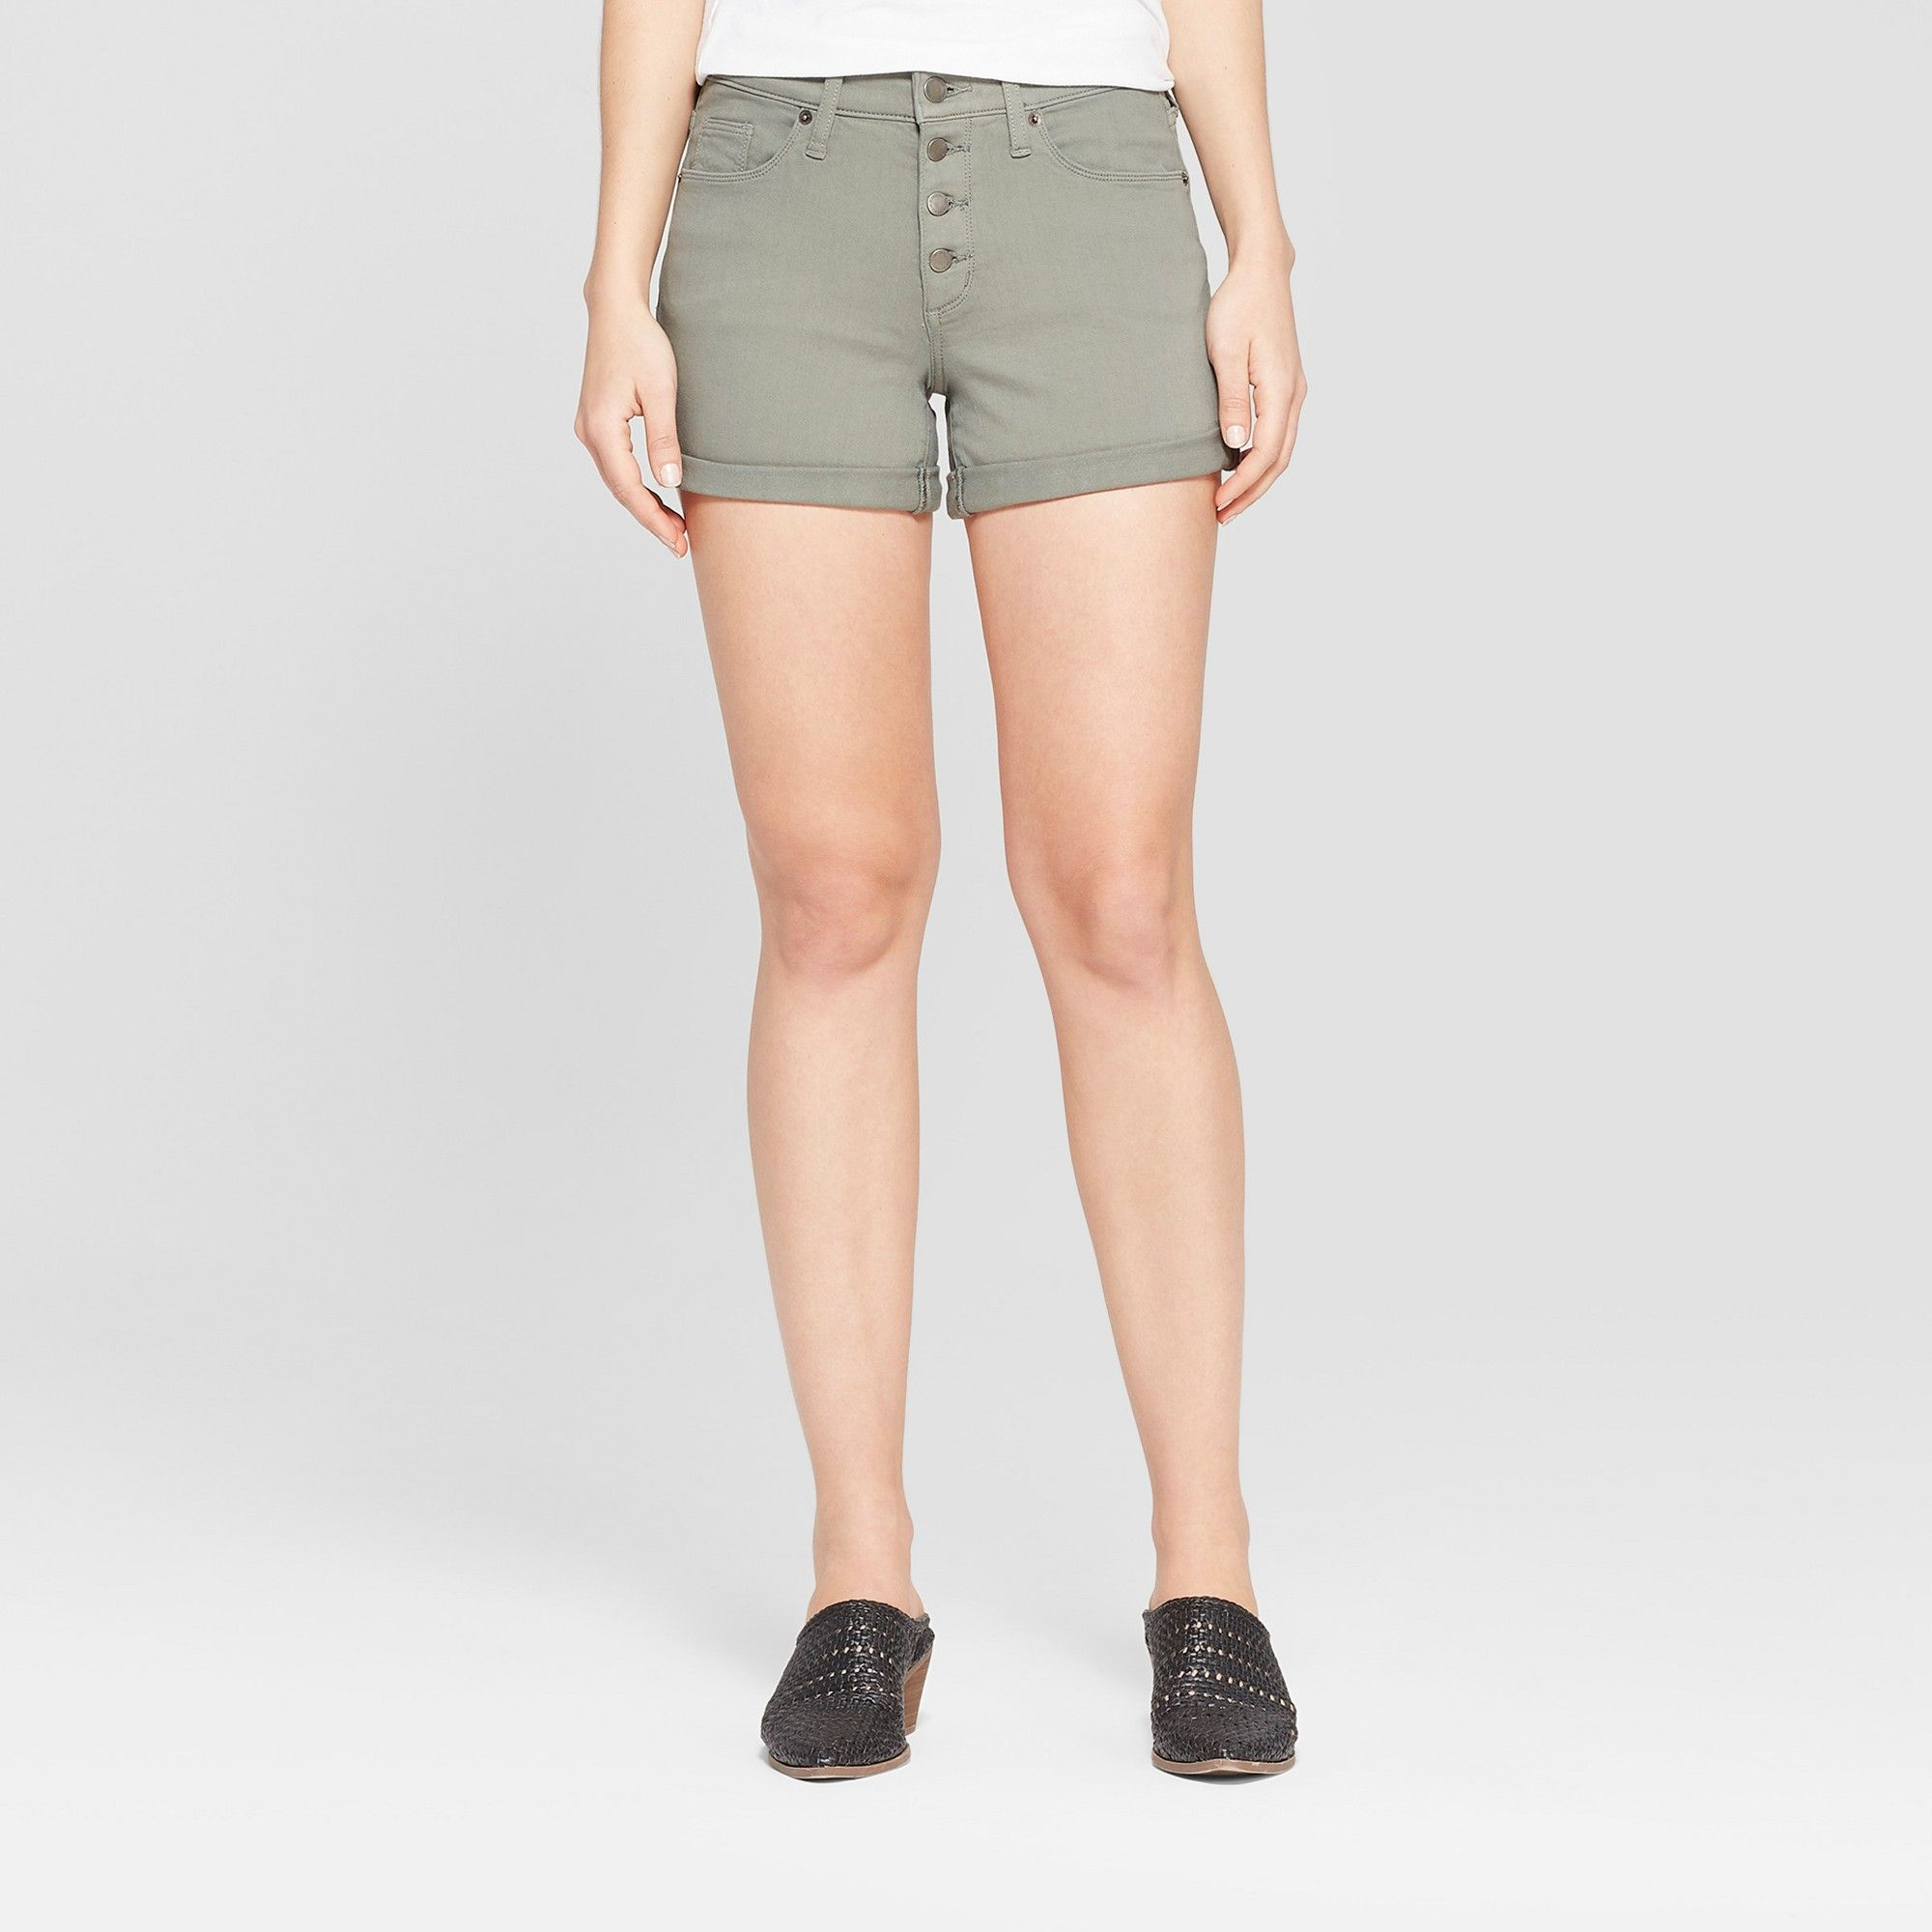 2de3fc5790 Women's High-Rise Button Fly Double Cuff Jean Shorts - Universal Thread  Olive 16, Gray